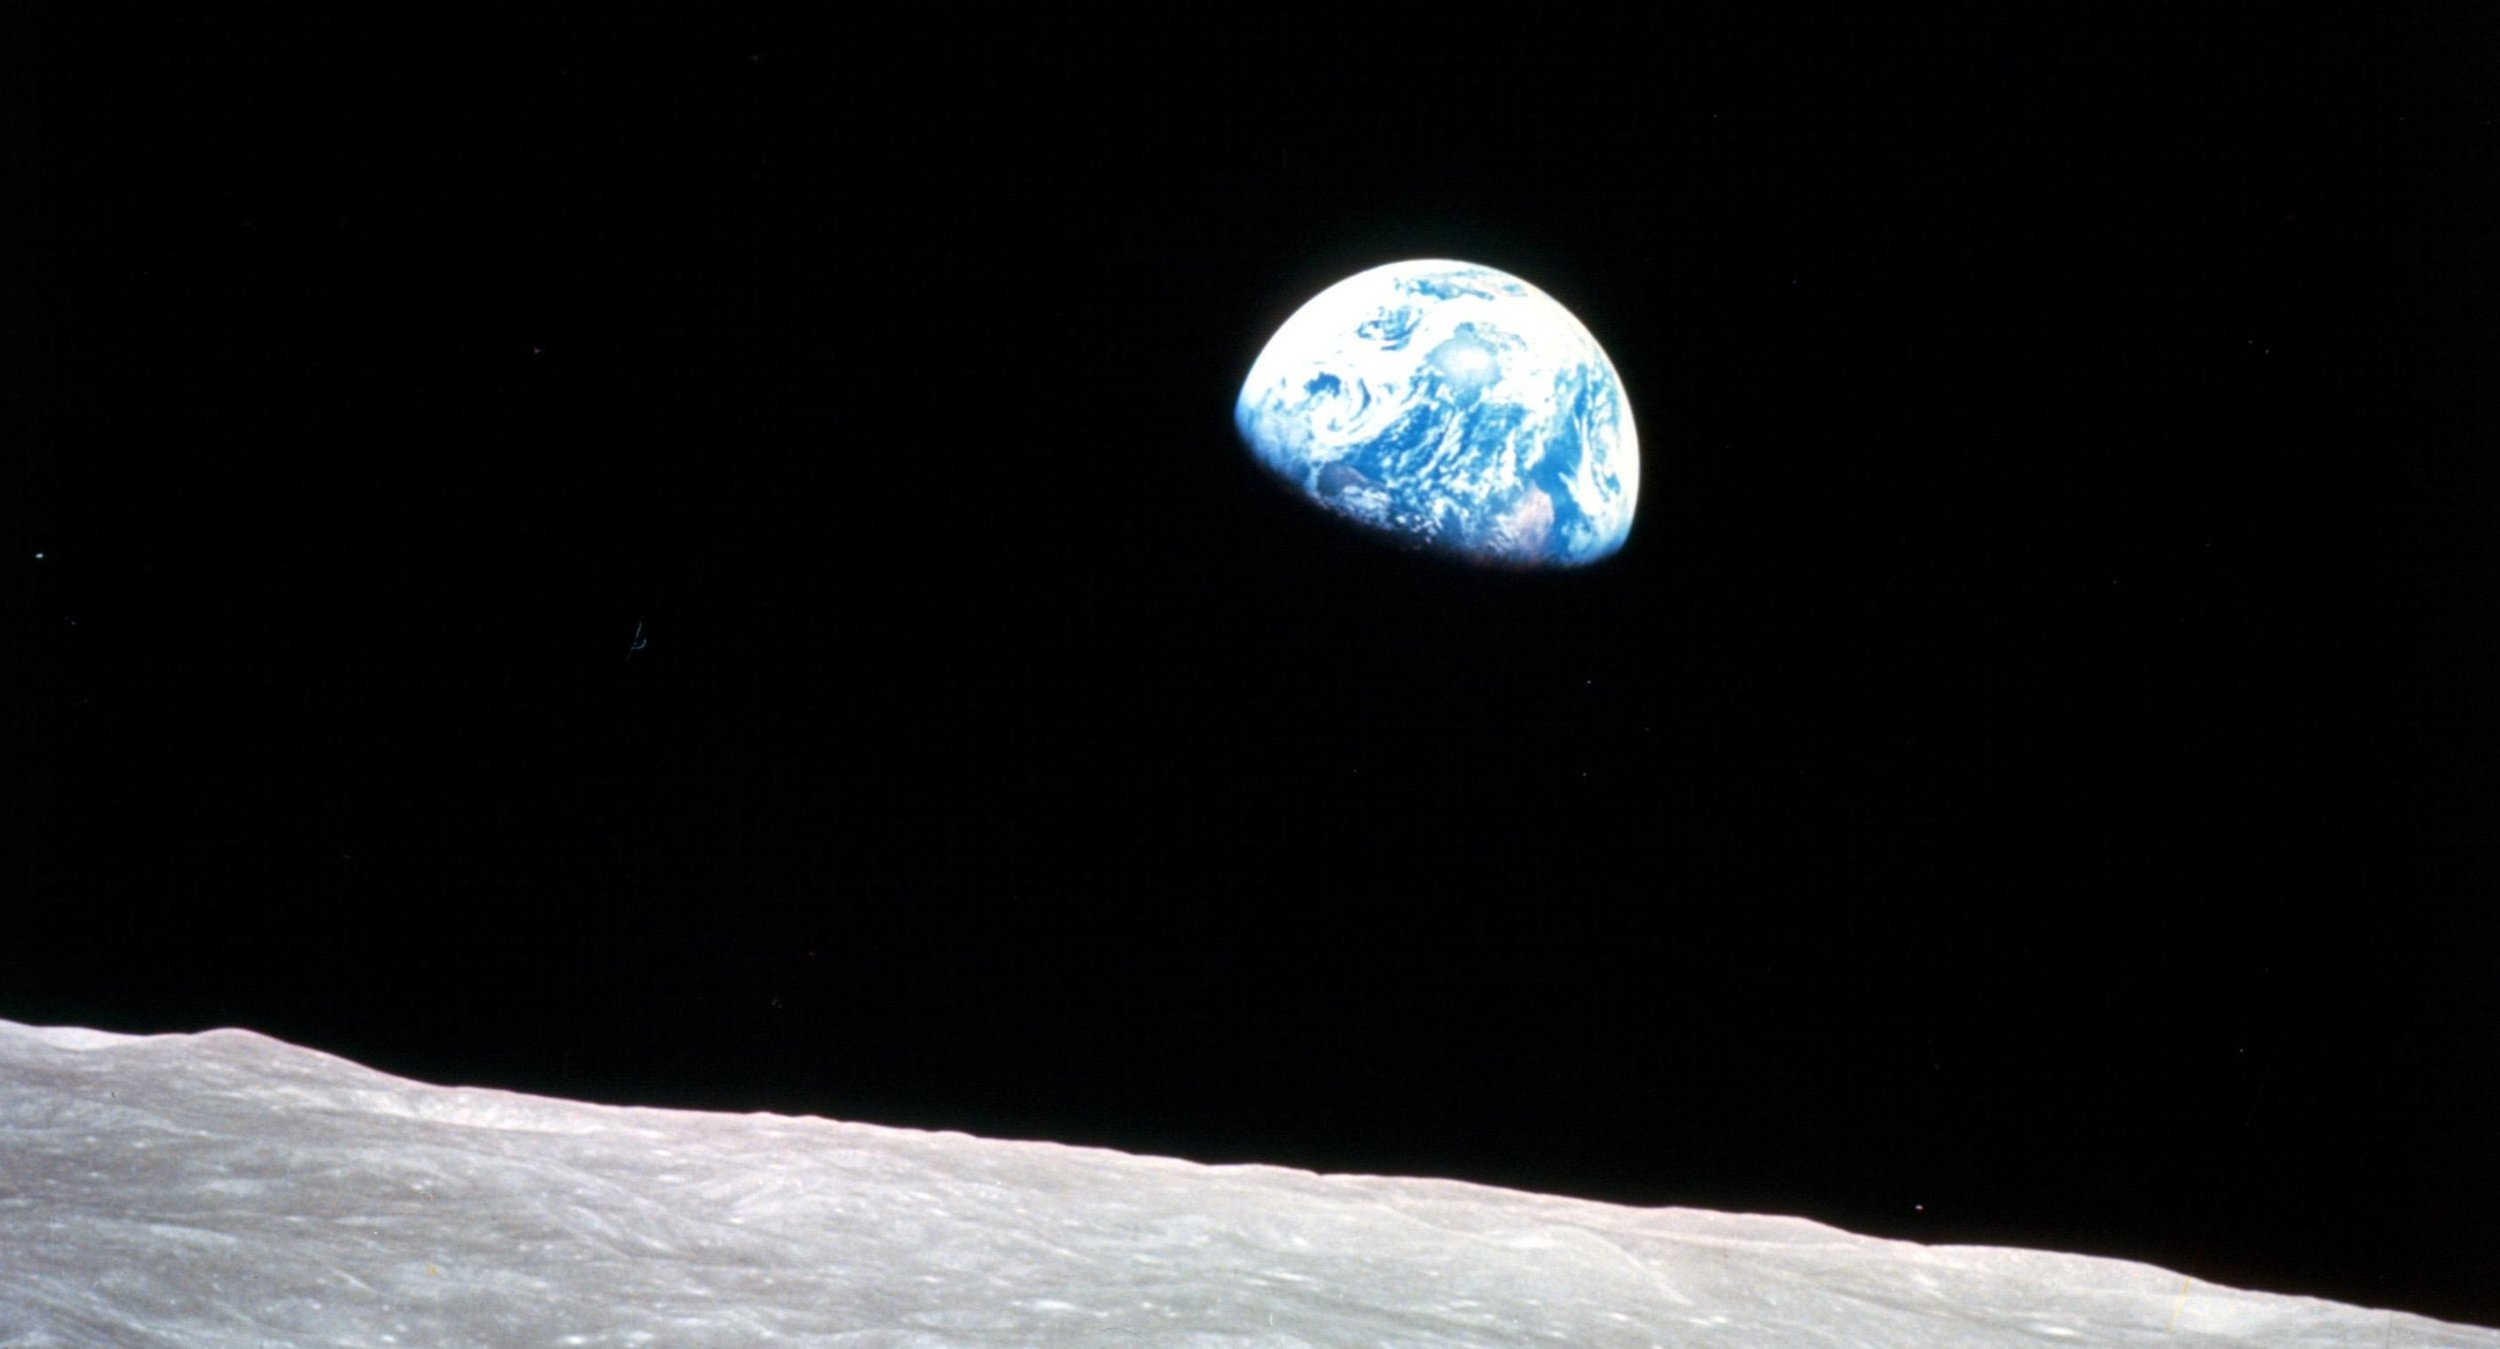 Earthrise, Apollo 8, December 24, 1968